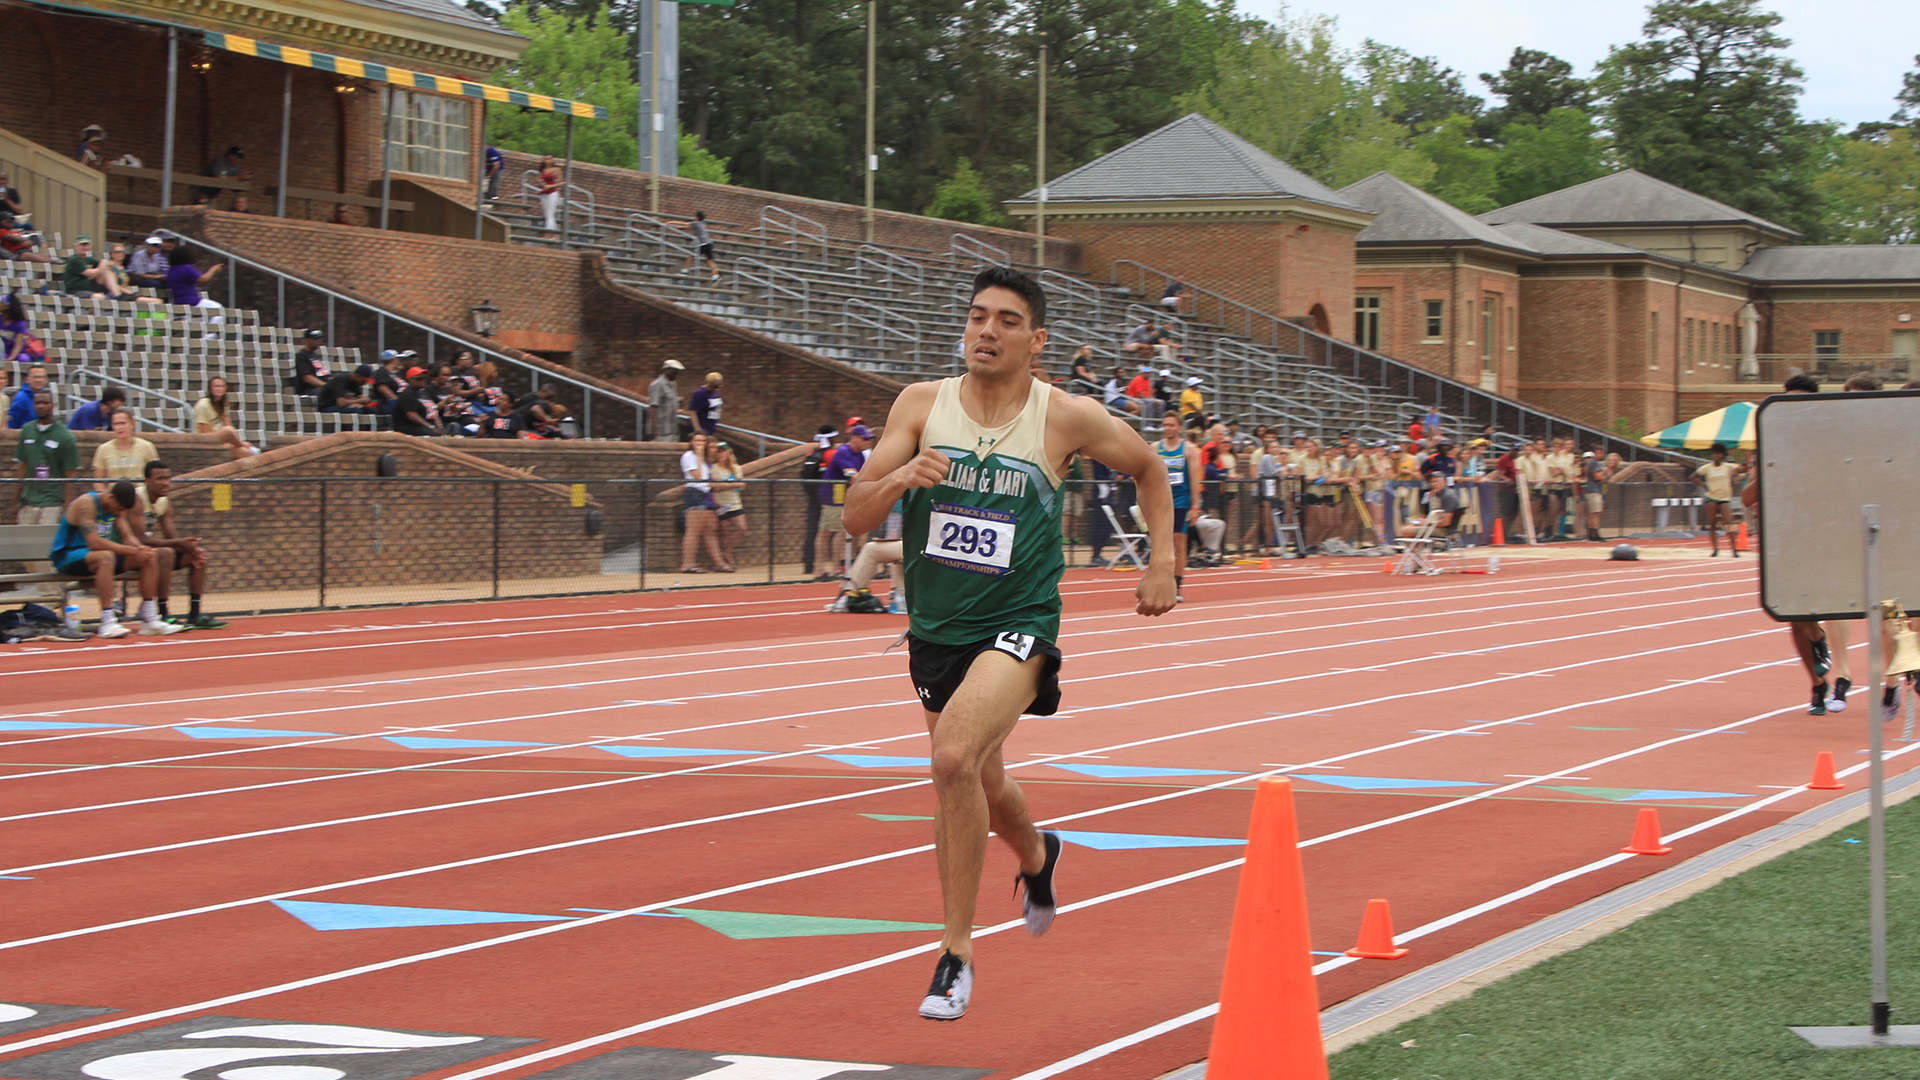 William & Mary William & Mary Mens College Track & Field - William & Mary News, Scores, and Stats